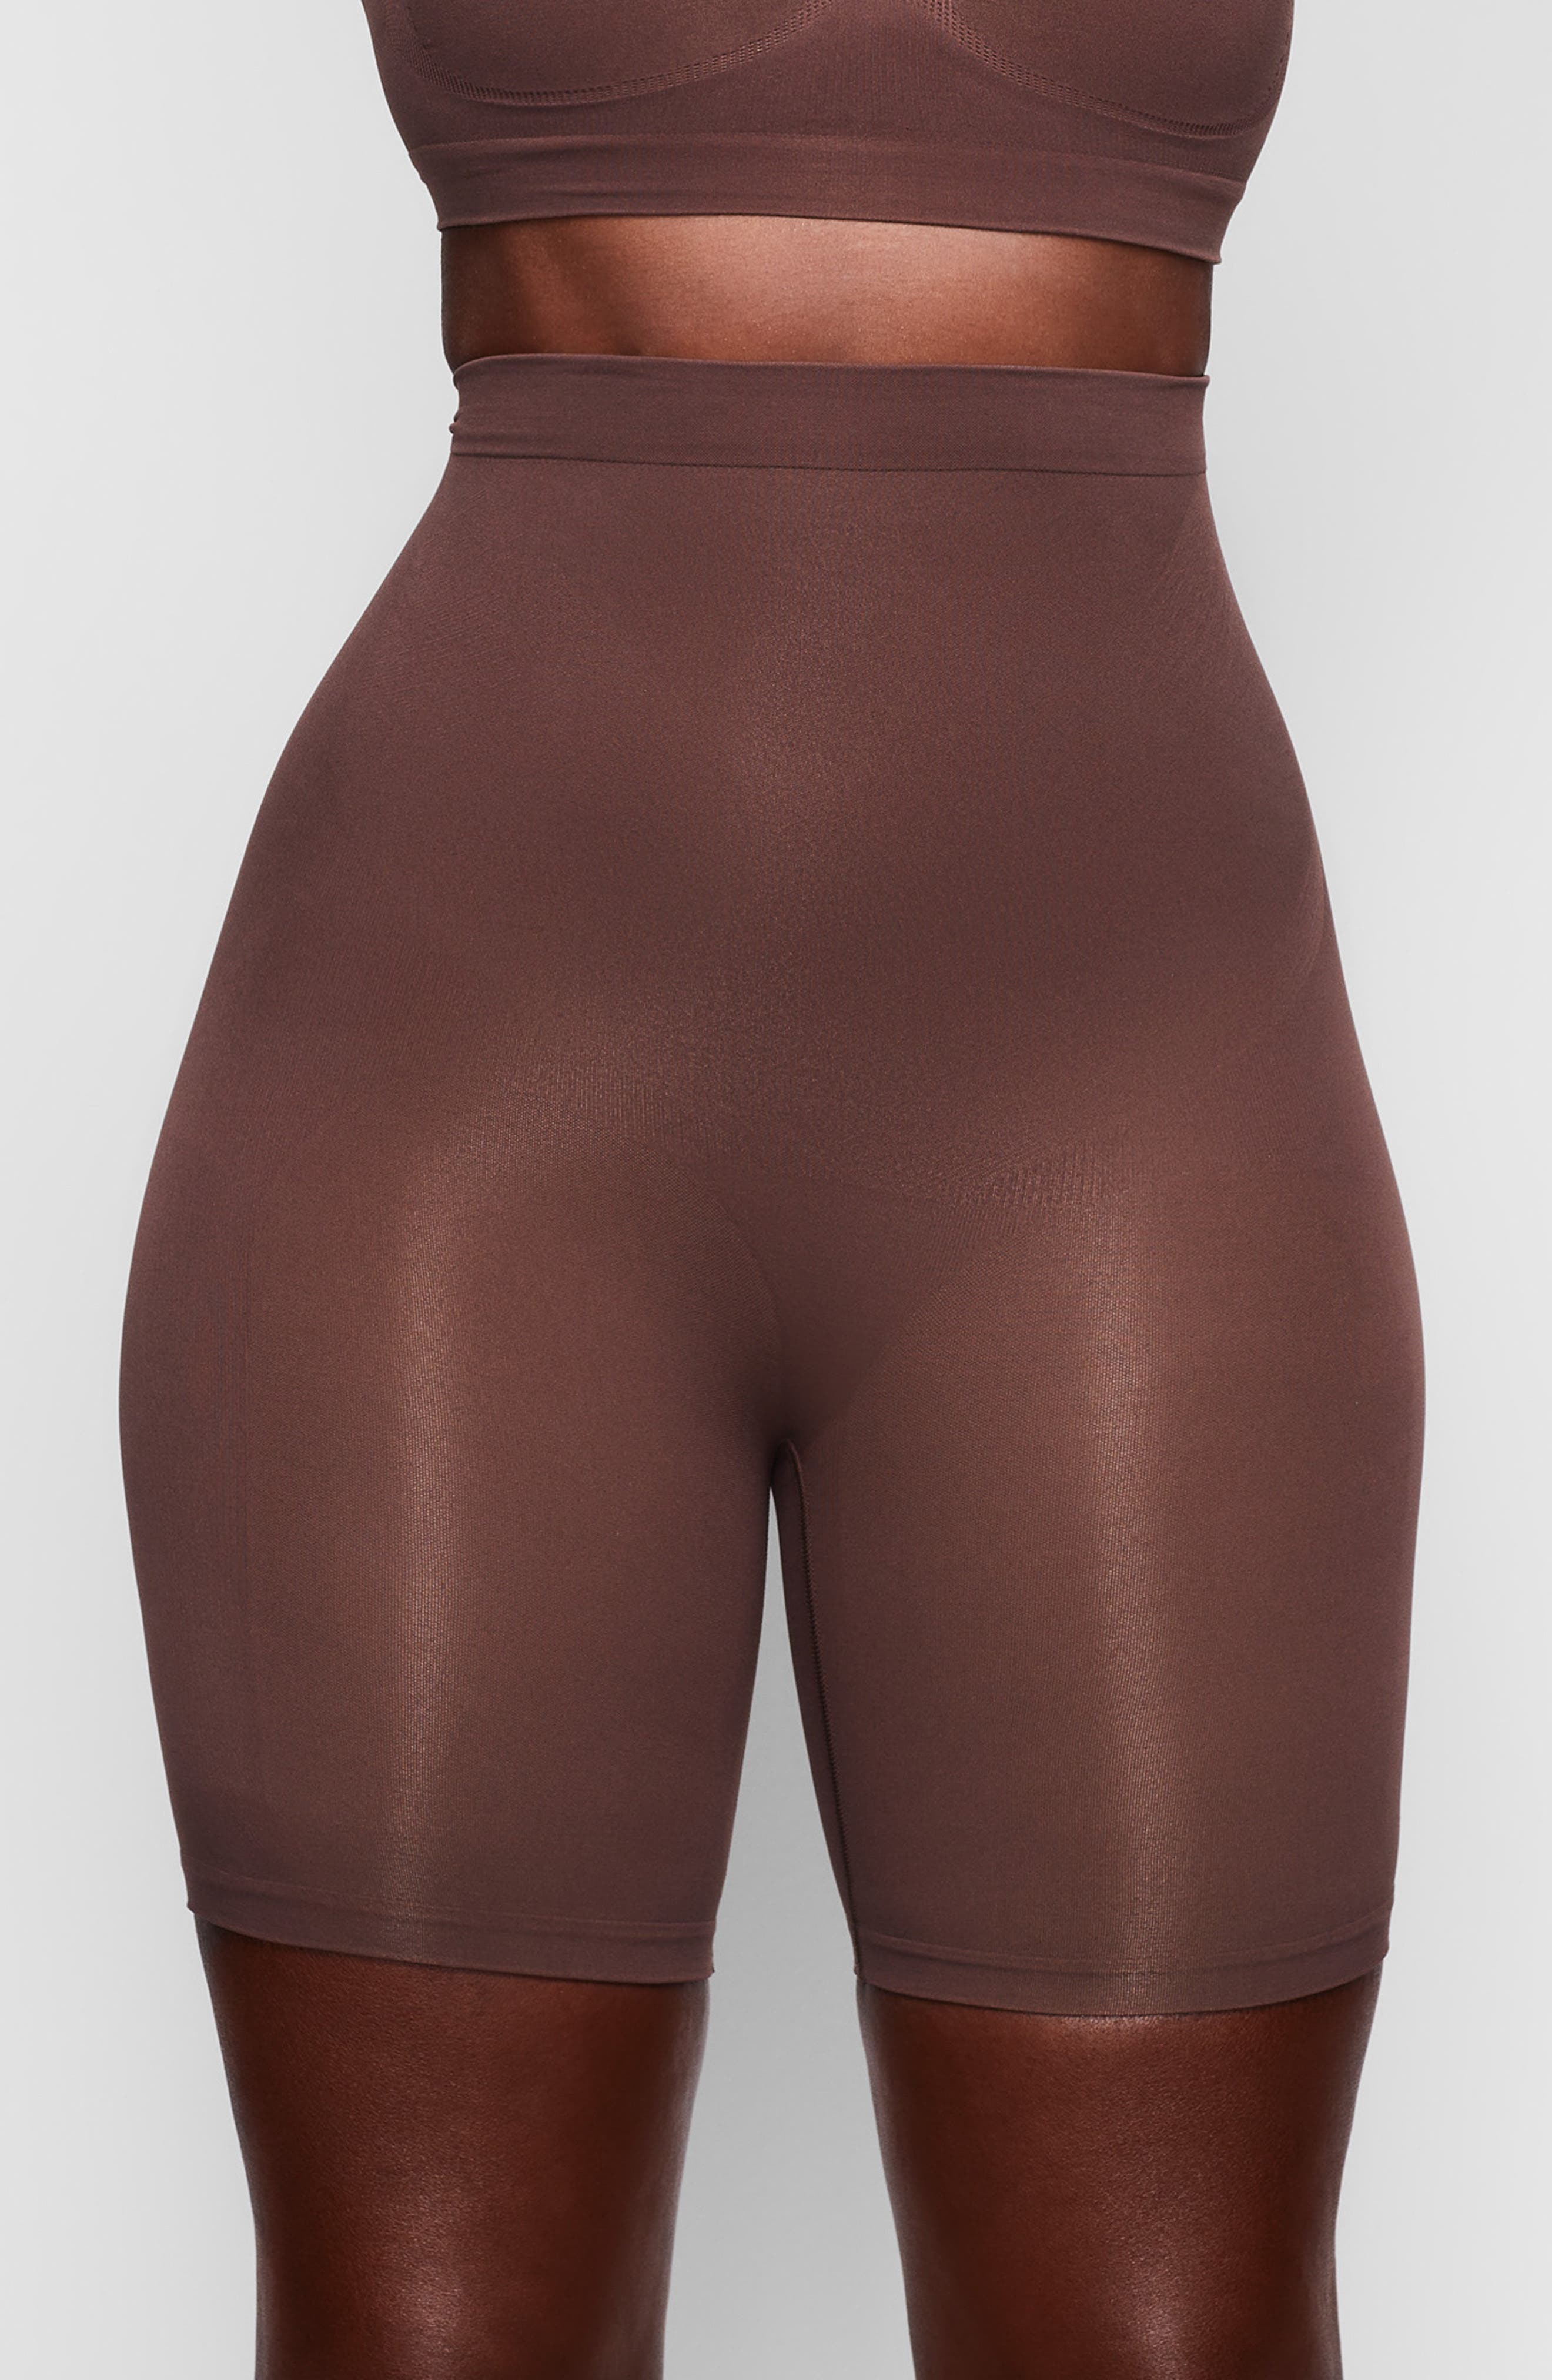 Sculpt your body\\\'s natural shape in mid-thigh shaping shorts with a whisper-soft and seamless design from Kim Kardashian West\\\'s SKIMS. Reflecting the brand\\\'s passion for highly technical shapewear solutions for every body, this staple piece smoothes your upper legs while lifting your butt and comes in nine different shades to complement your skintone. Style Name: Skims Sculpting Seamless Mid Shorts (Regular & Plus Size). Style Number: 6013499.